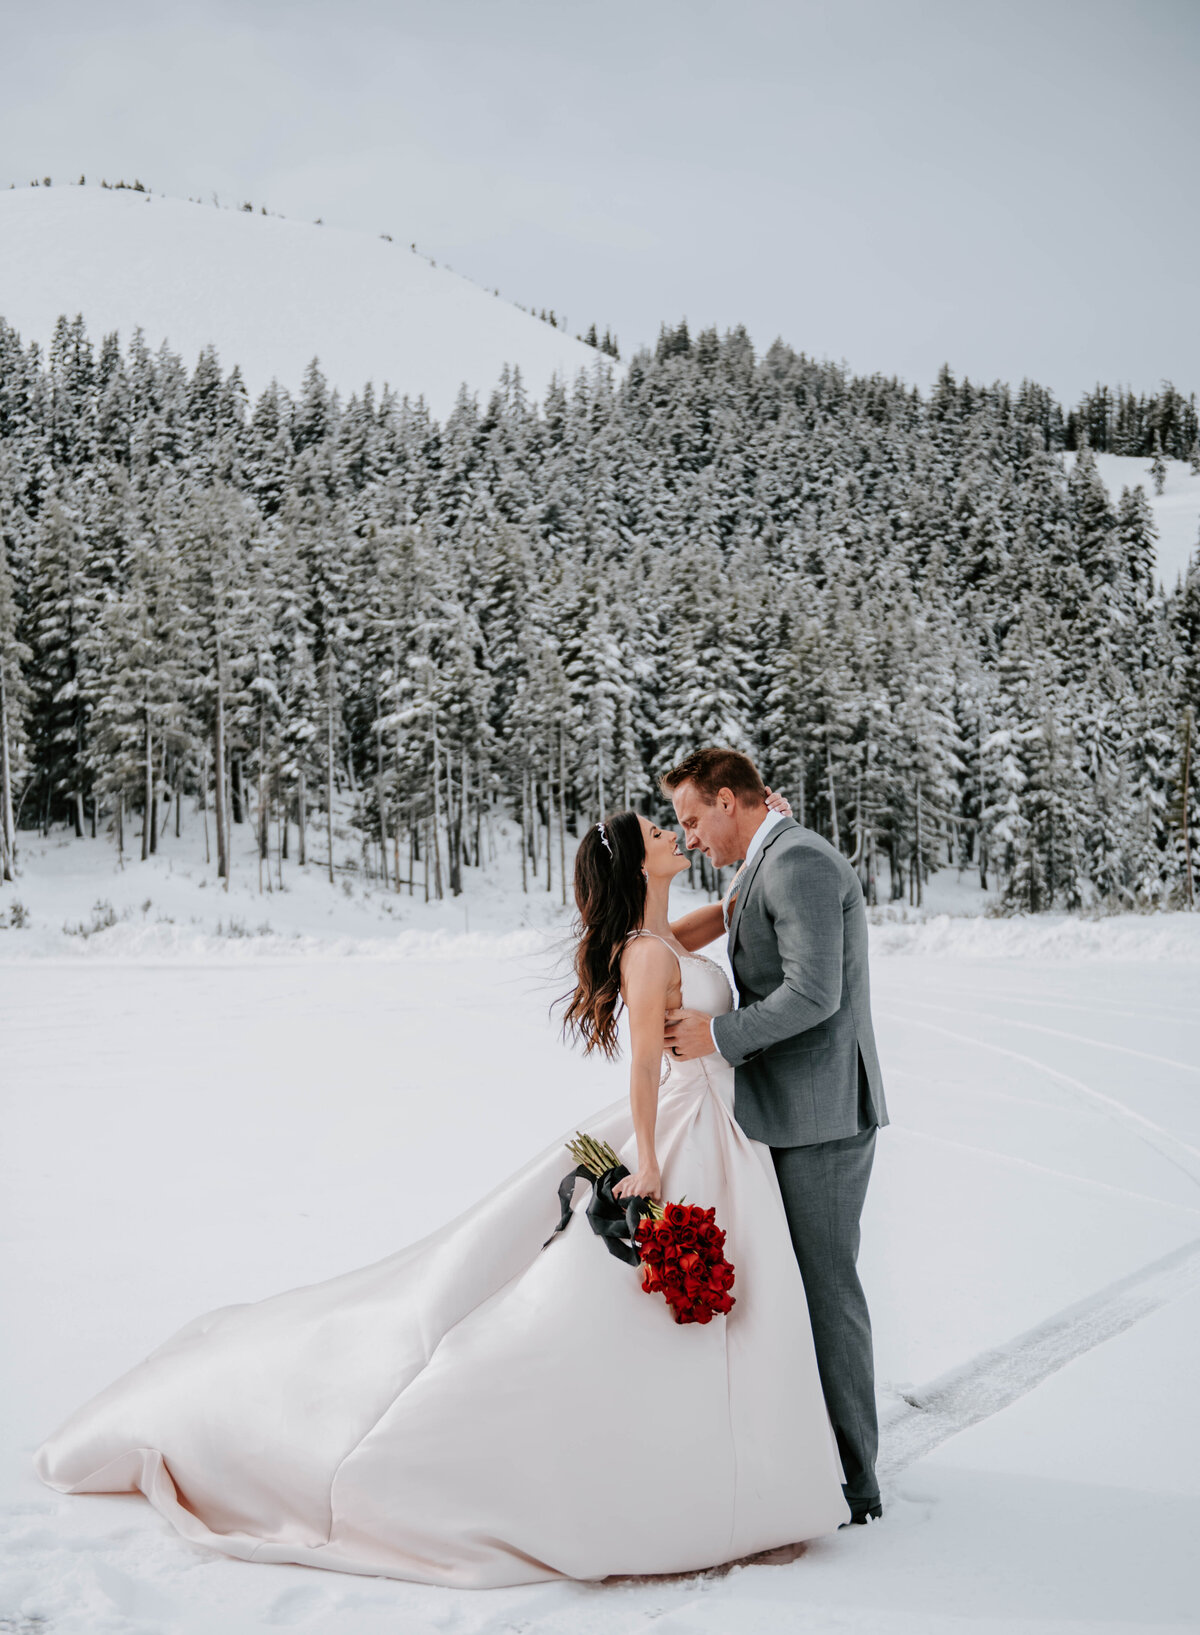 mt-bachelor-snow-winter-elopement-bend-oregon-wedding-photographer-2095